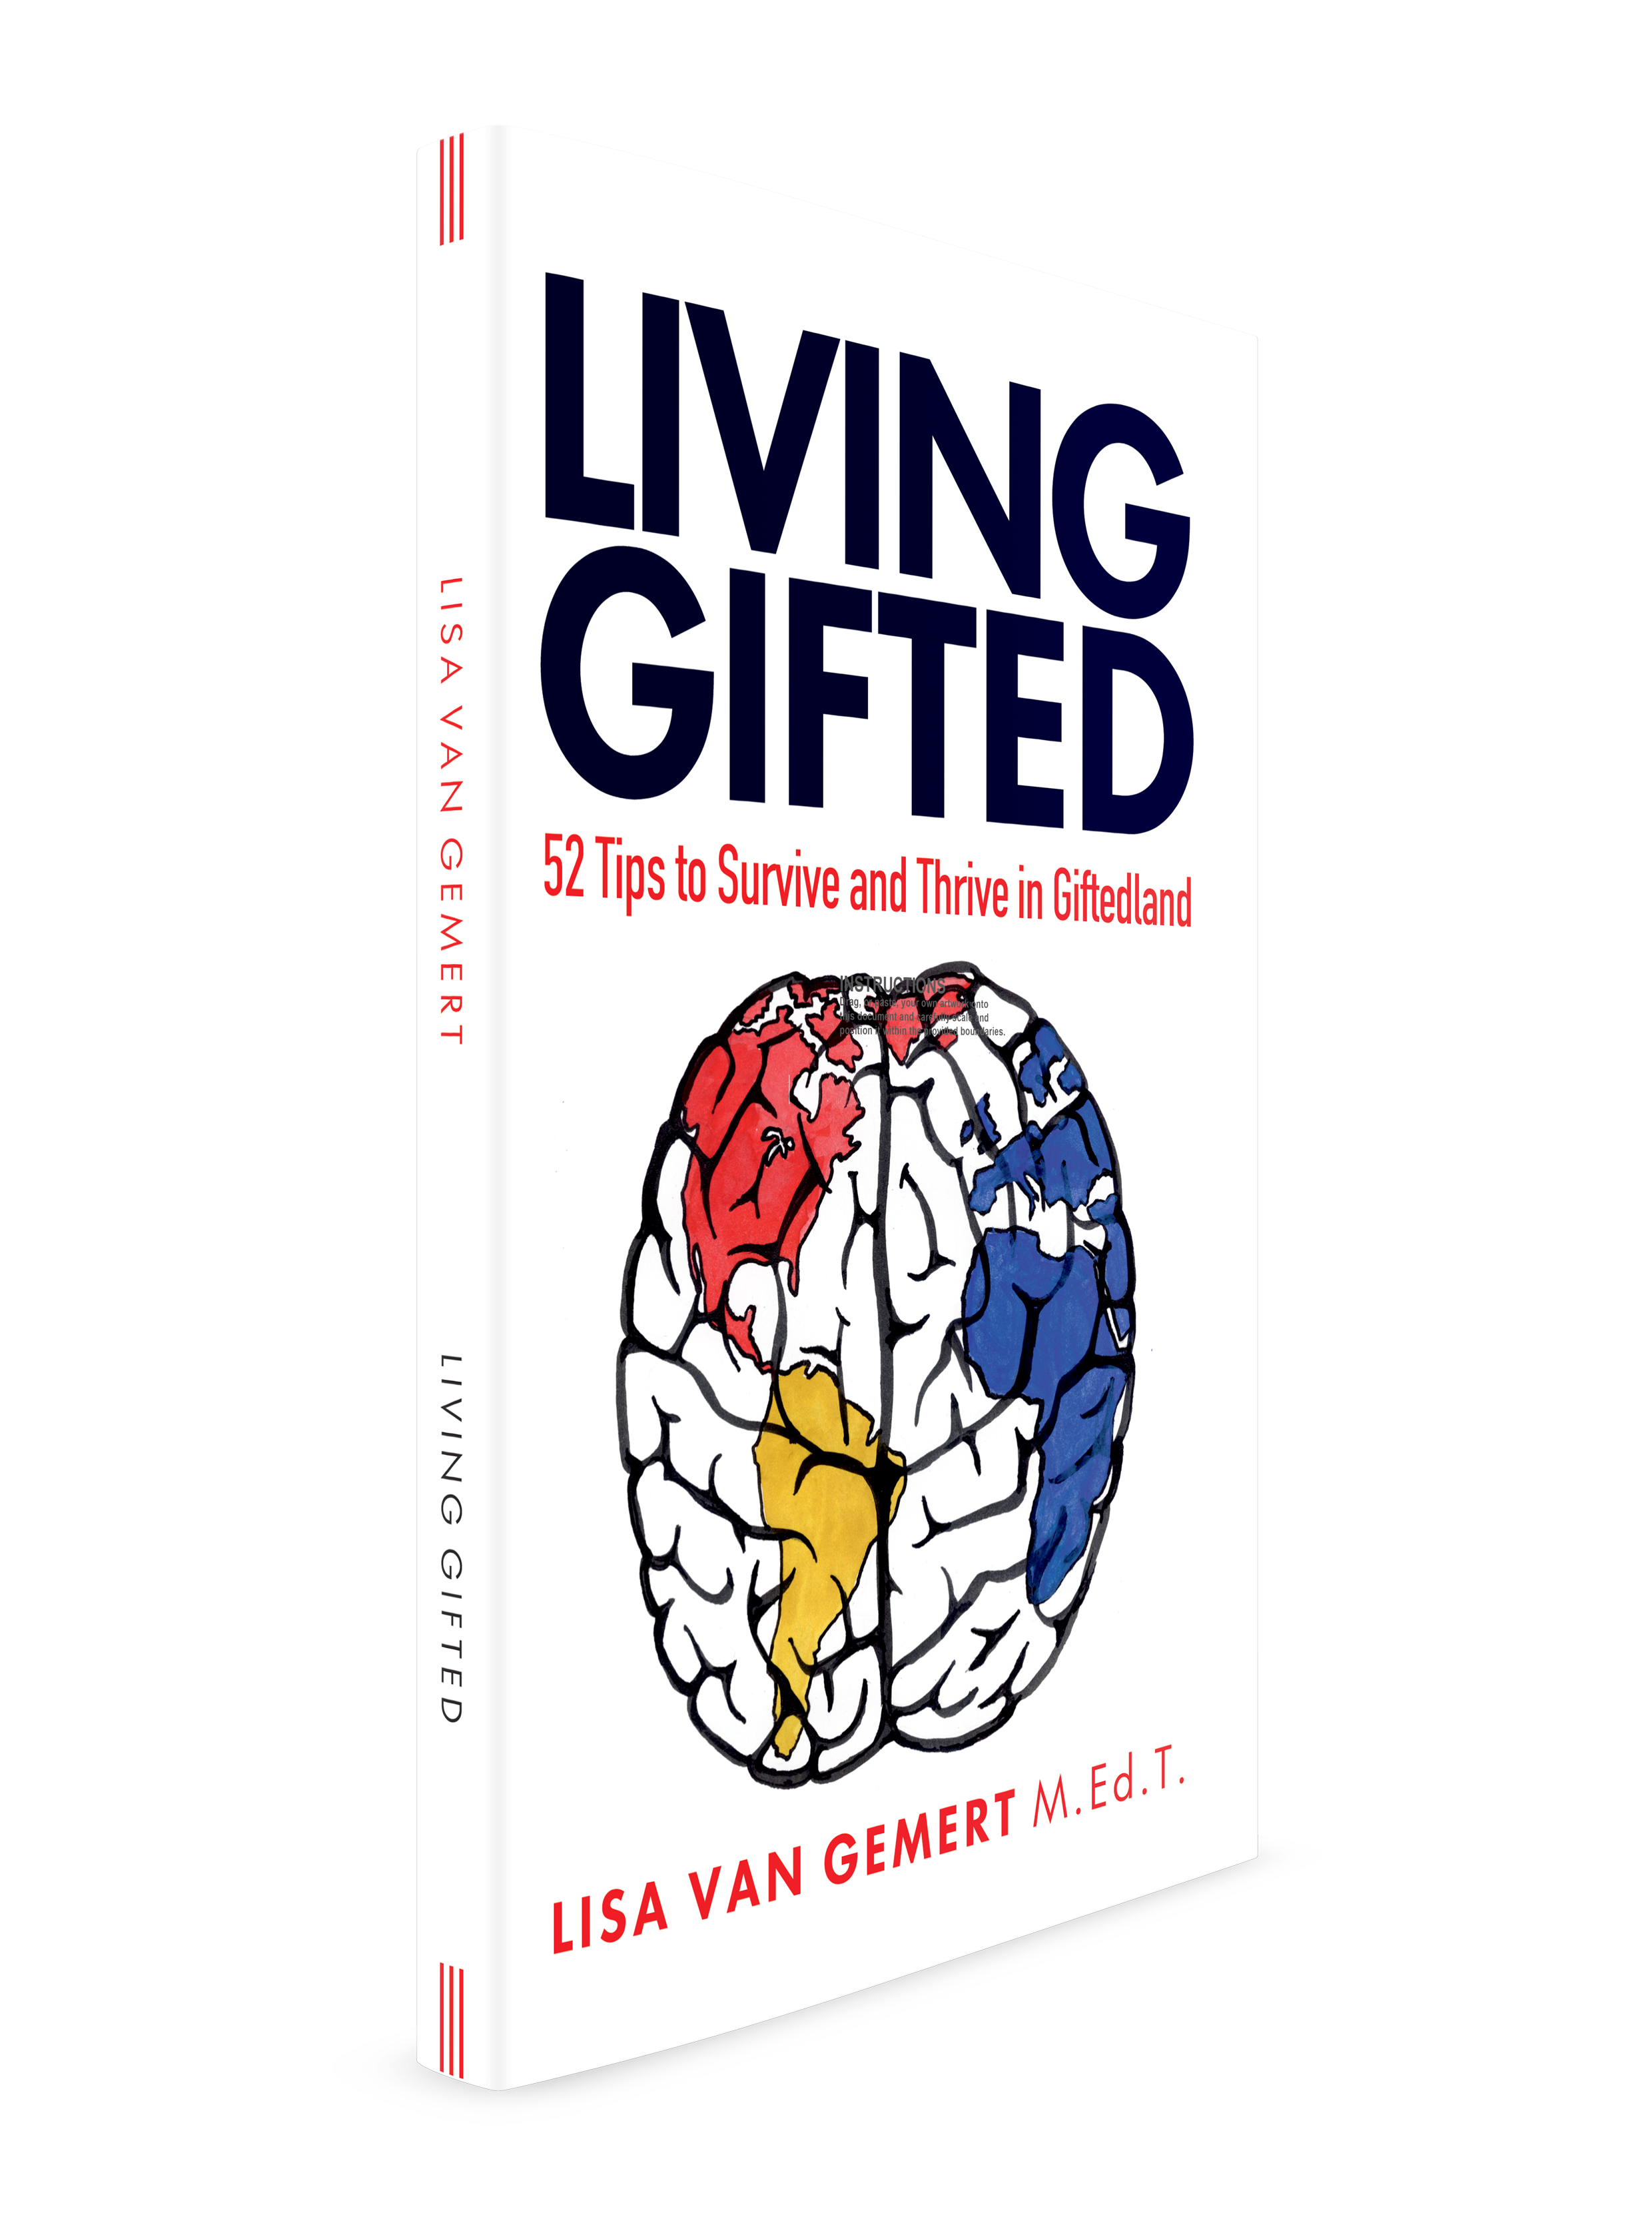 cover photo of book Living Gifted